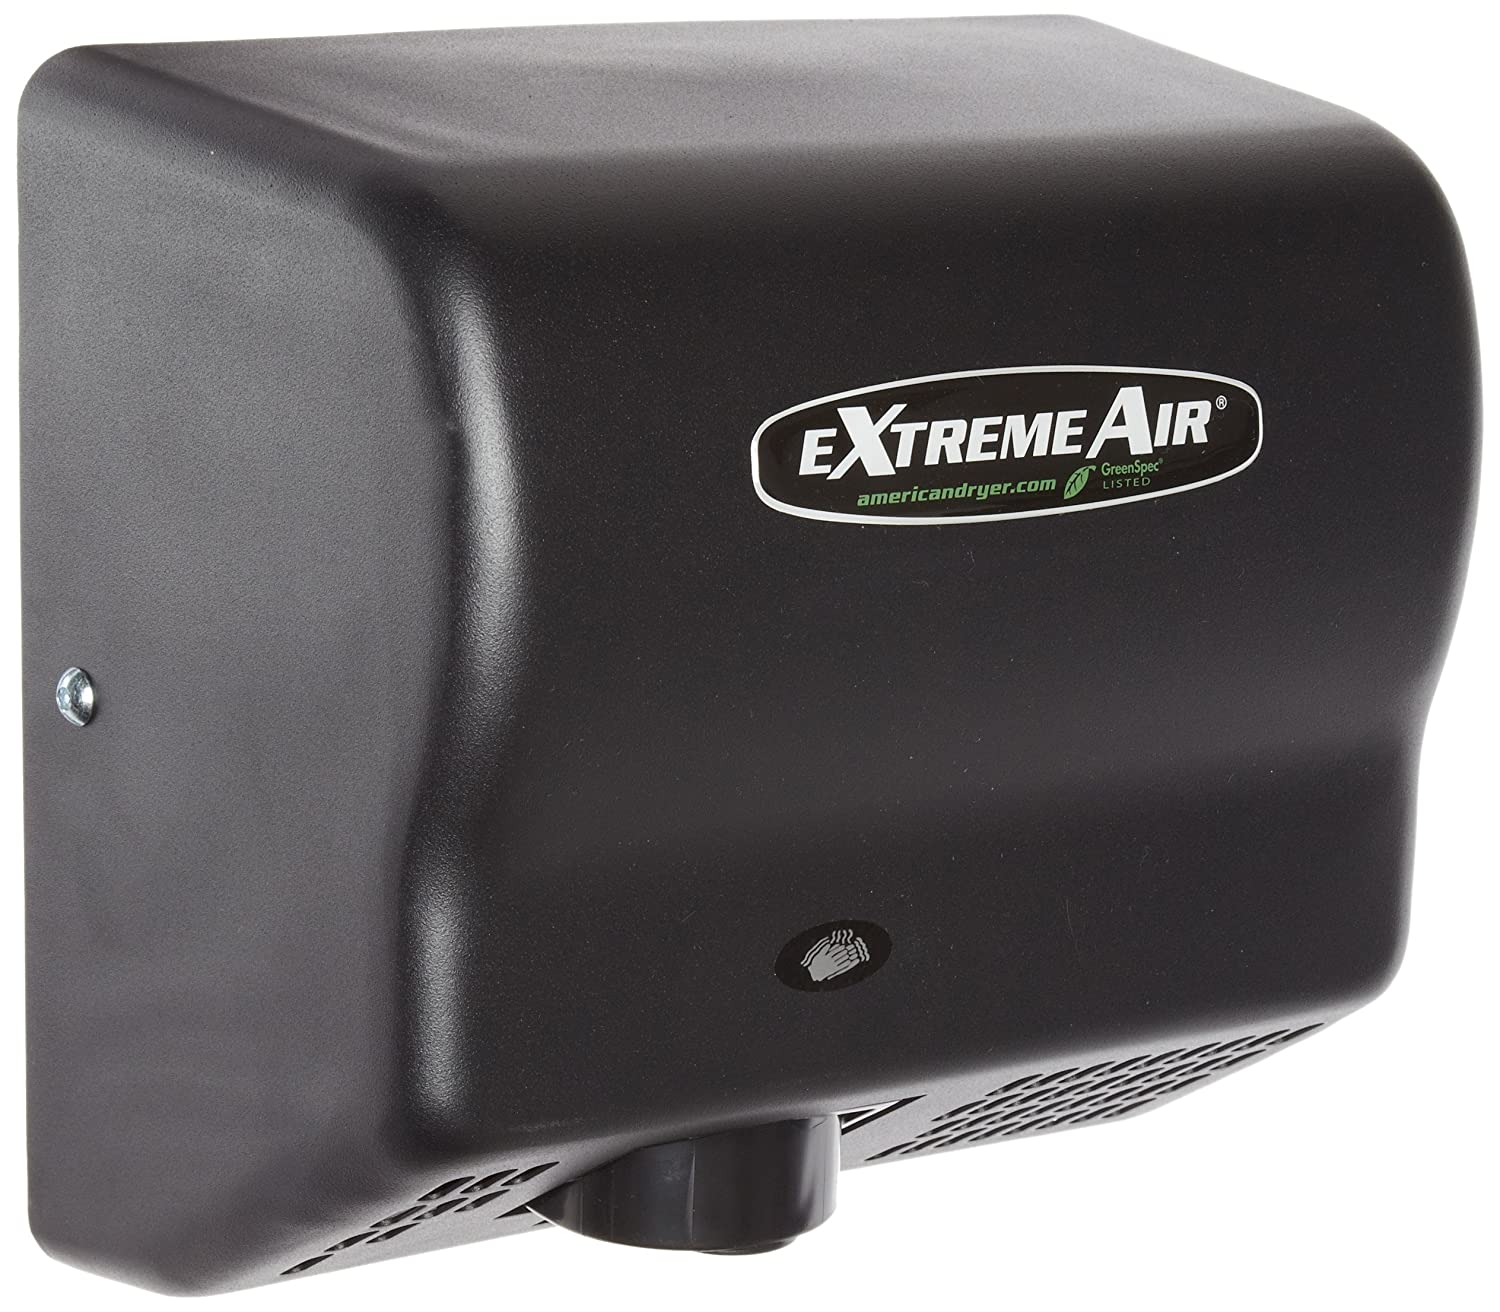 American Dryer ExtremeAir GXT9-BG Steel Cover High-Speed Automat